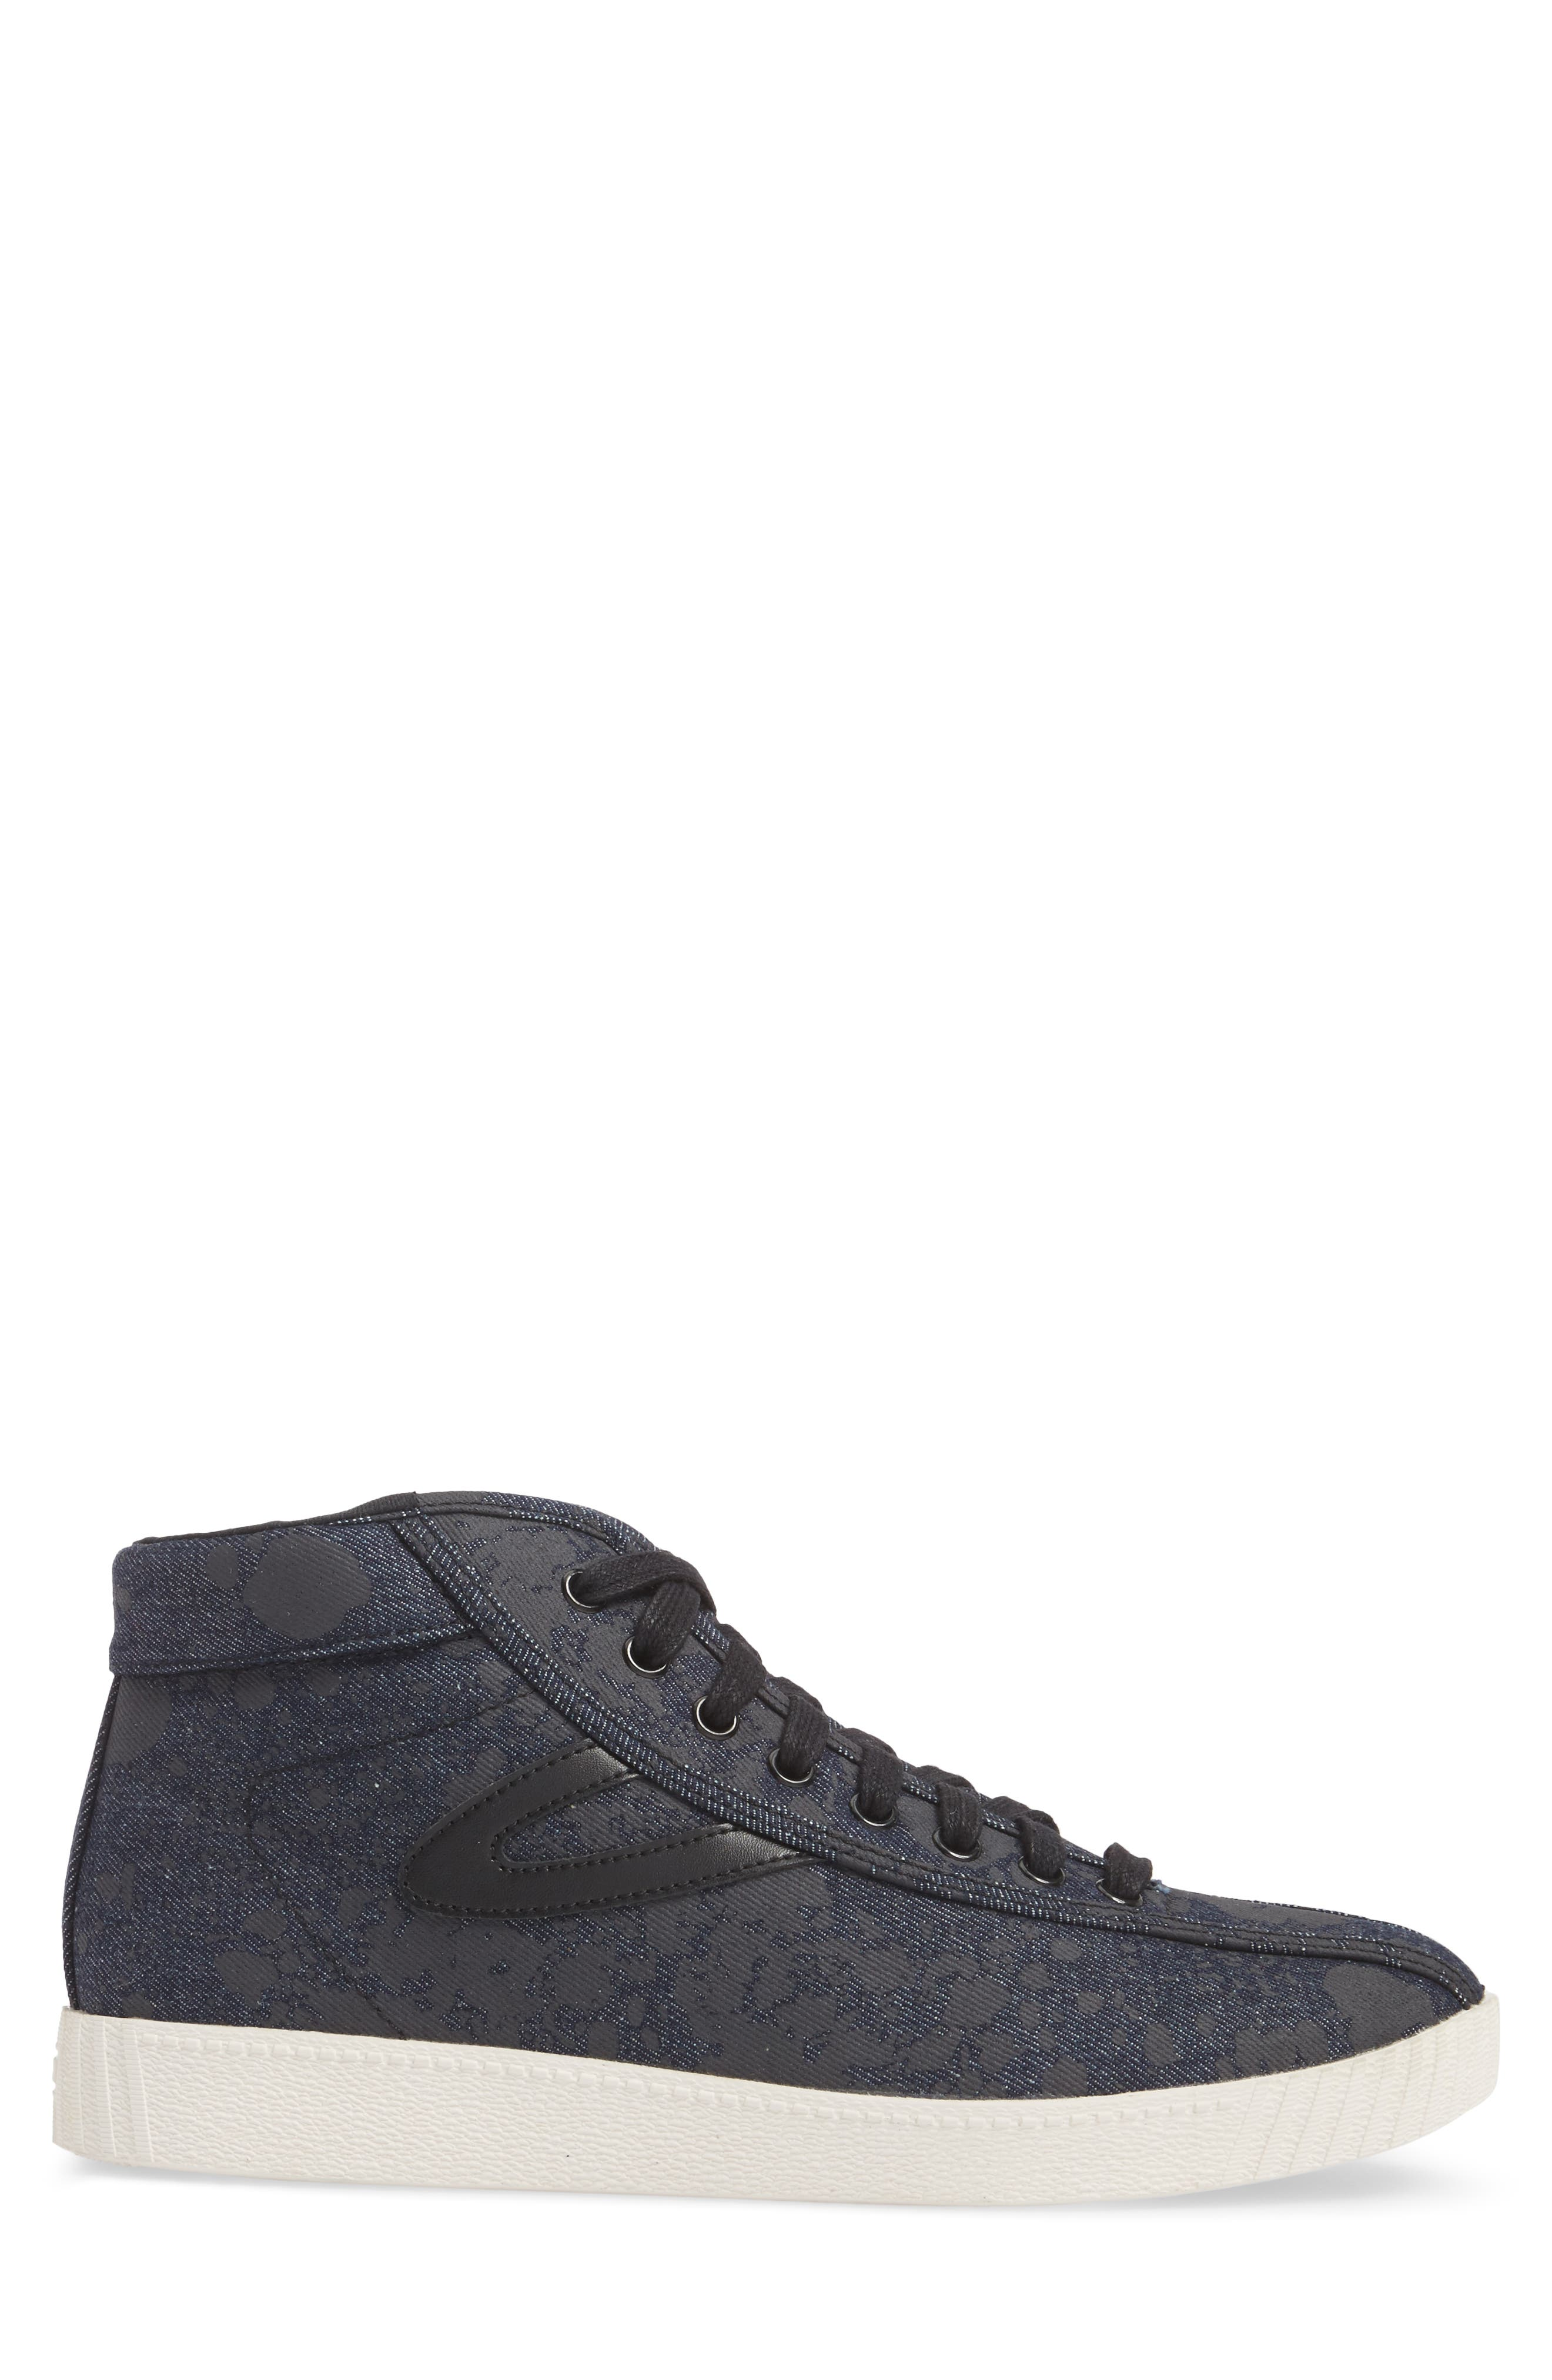 Nylite High Top Sneaker,                             Alternate thumbnail 3, color,                             001